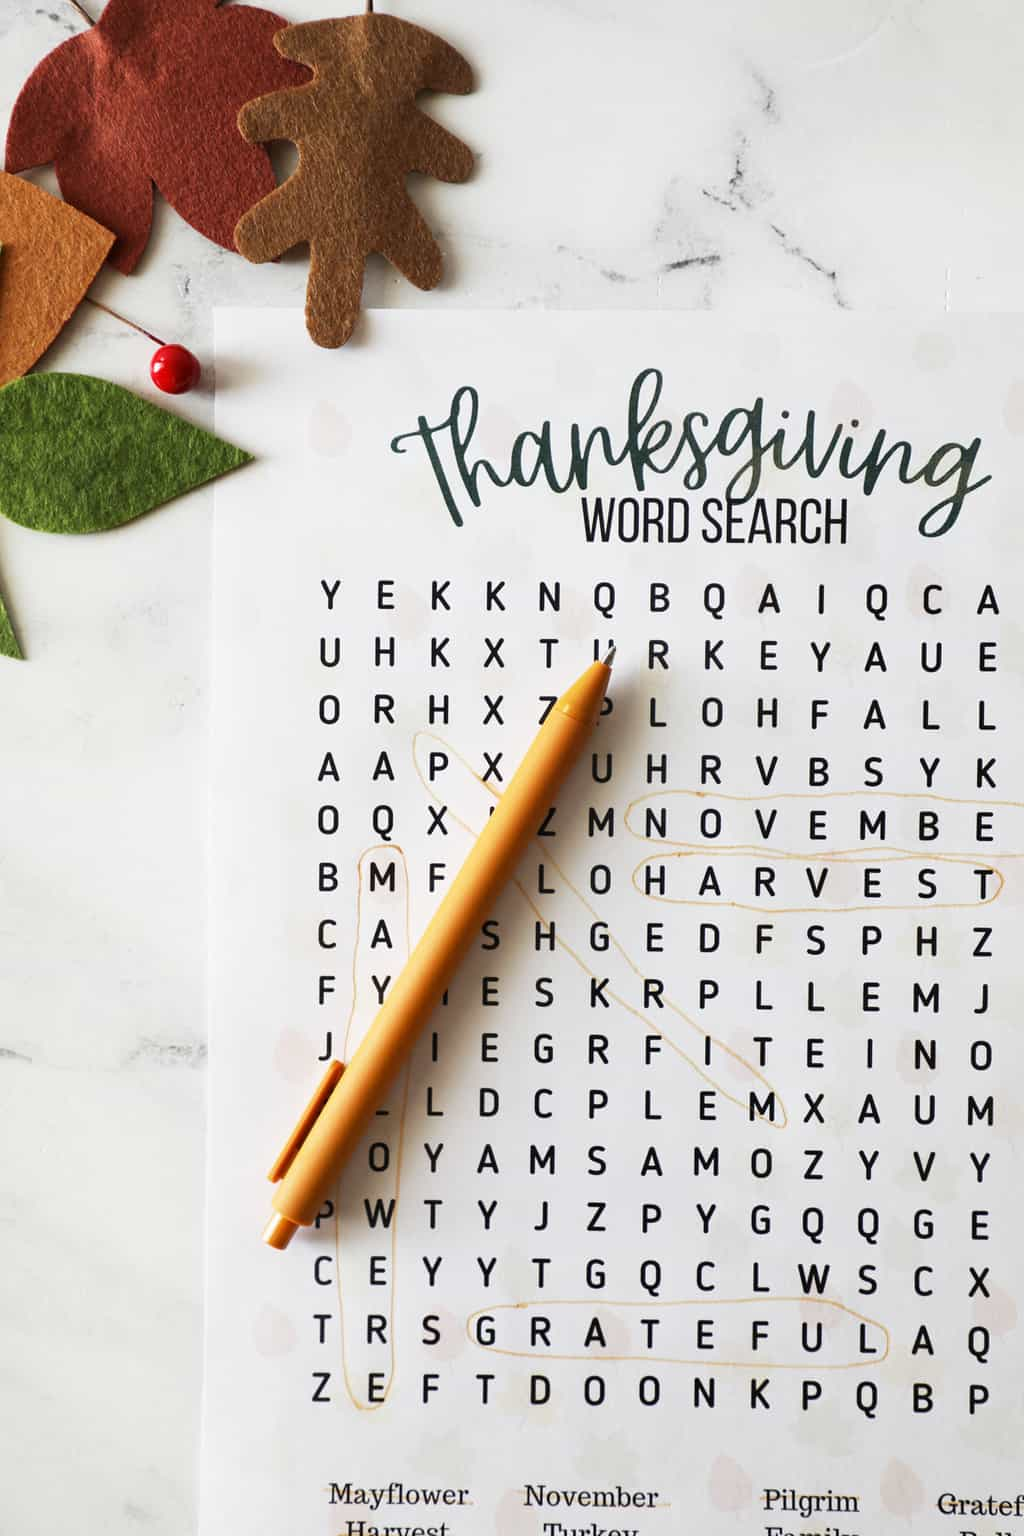 Thanksgiving word search with leaves in the corners